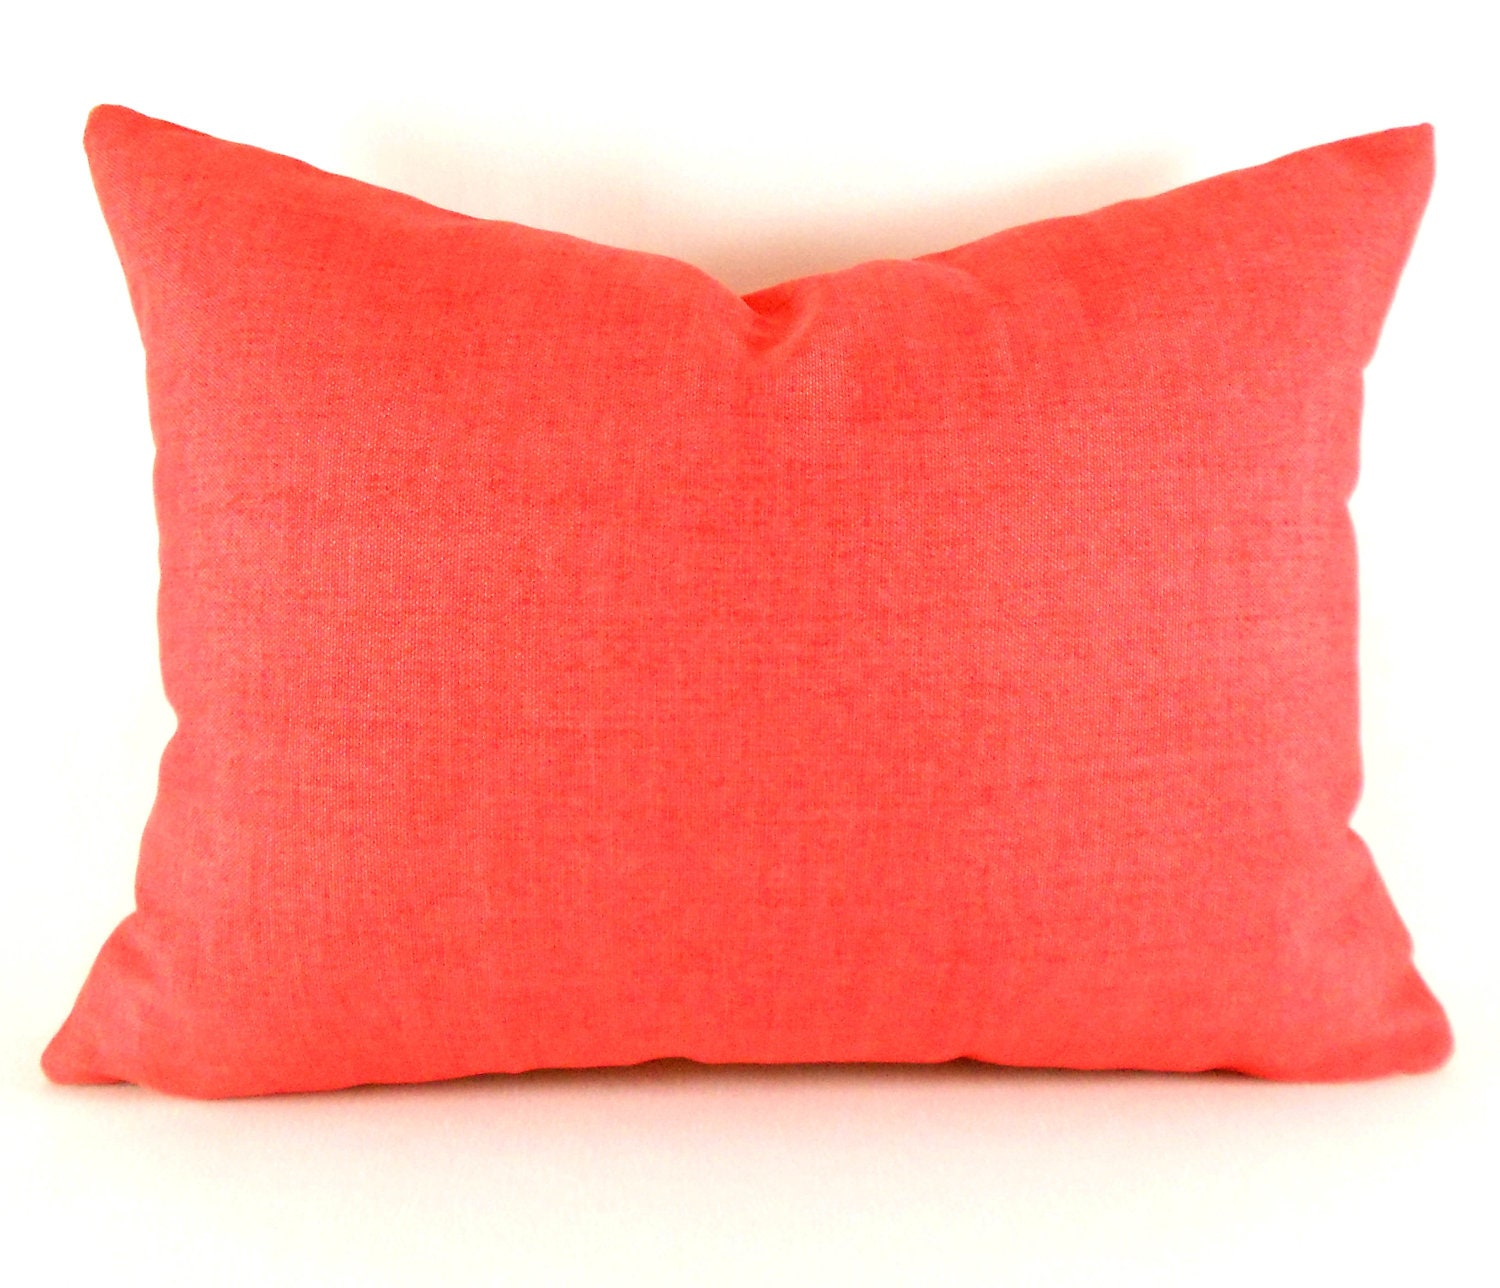 Decorative Outdoor Pillow Covers : Outdoor Lumbar Pillow Cover ANY SIZE Decorative Pillow Cover